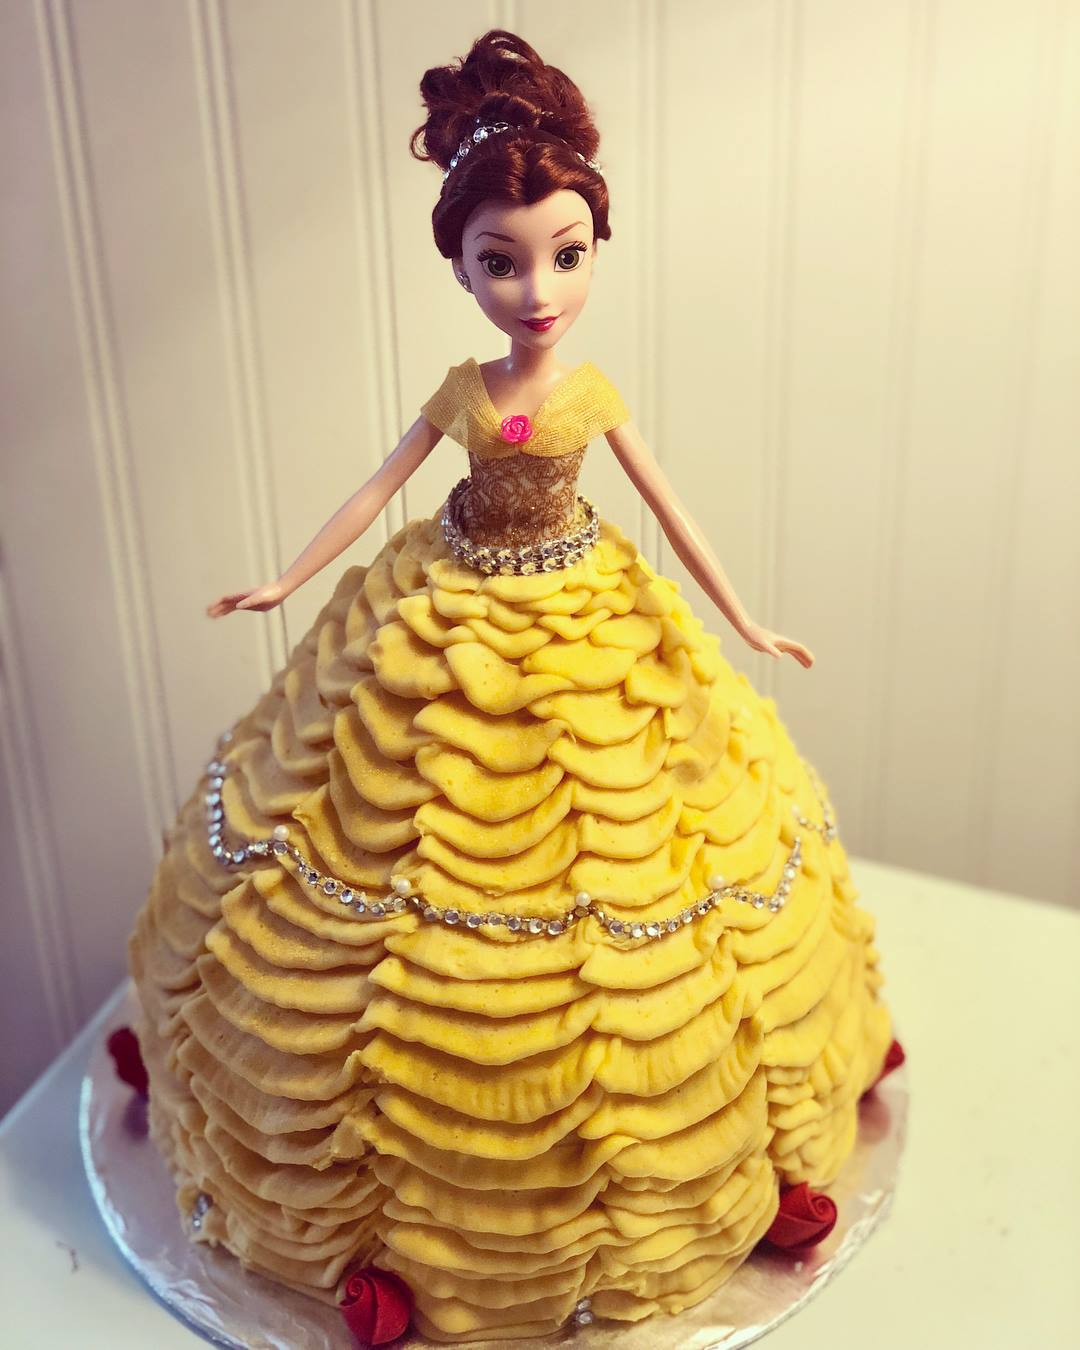 Belle Barbie Cake